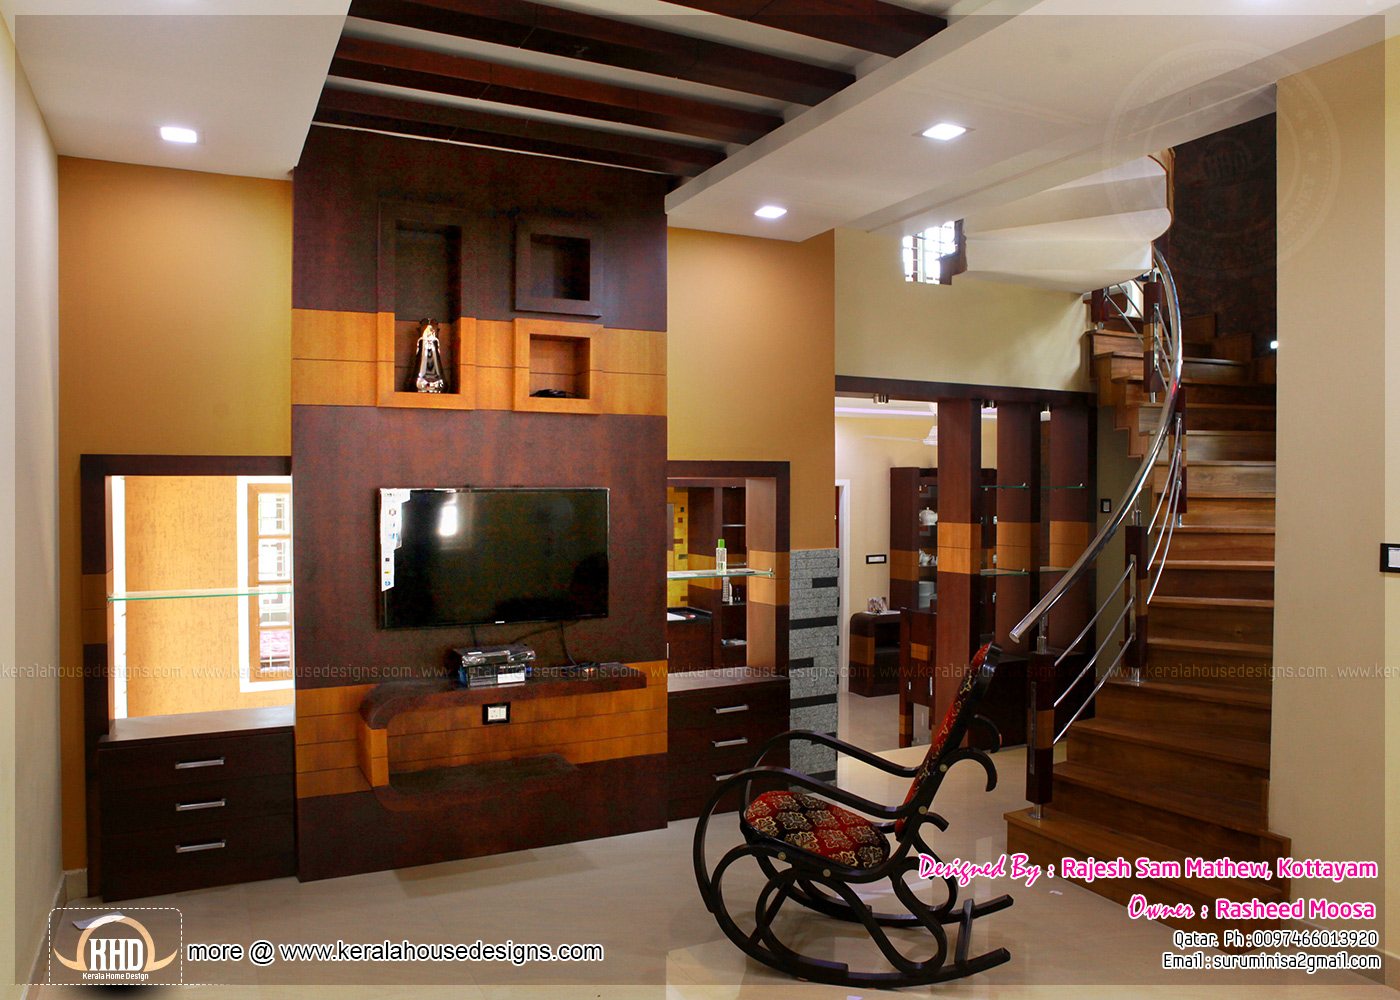 Kerala interior design with photos kerala home design for House and design